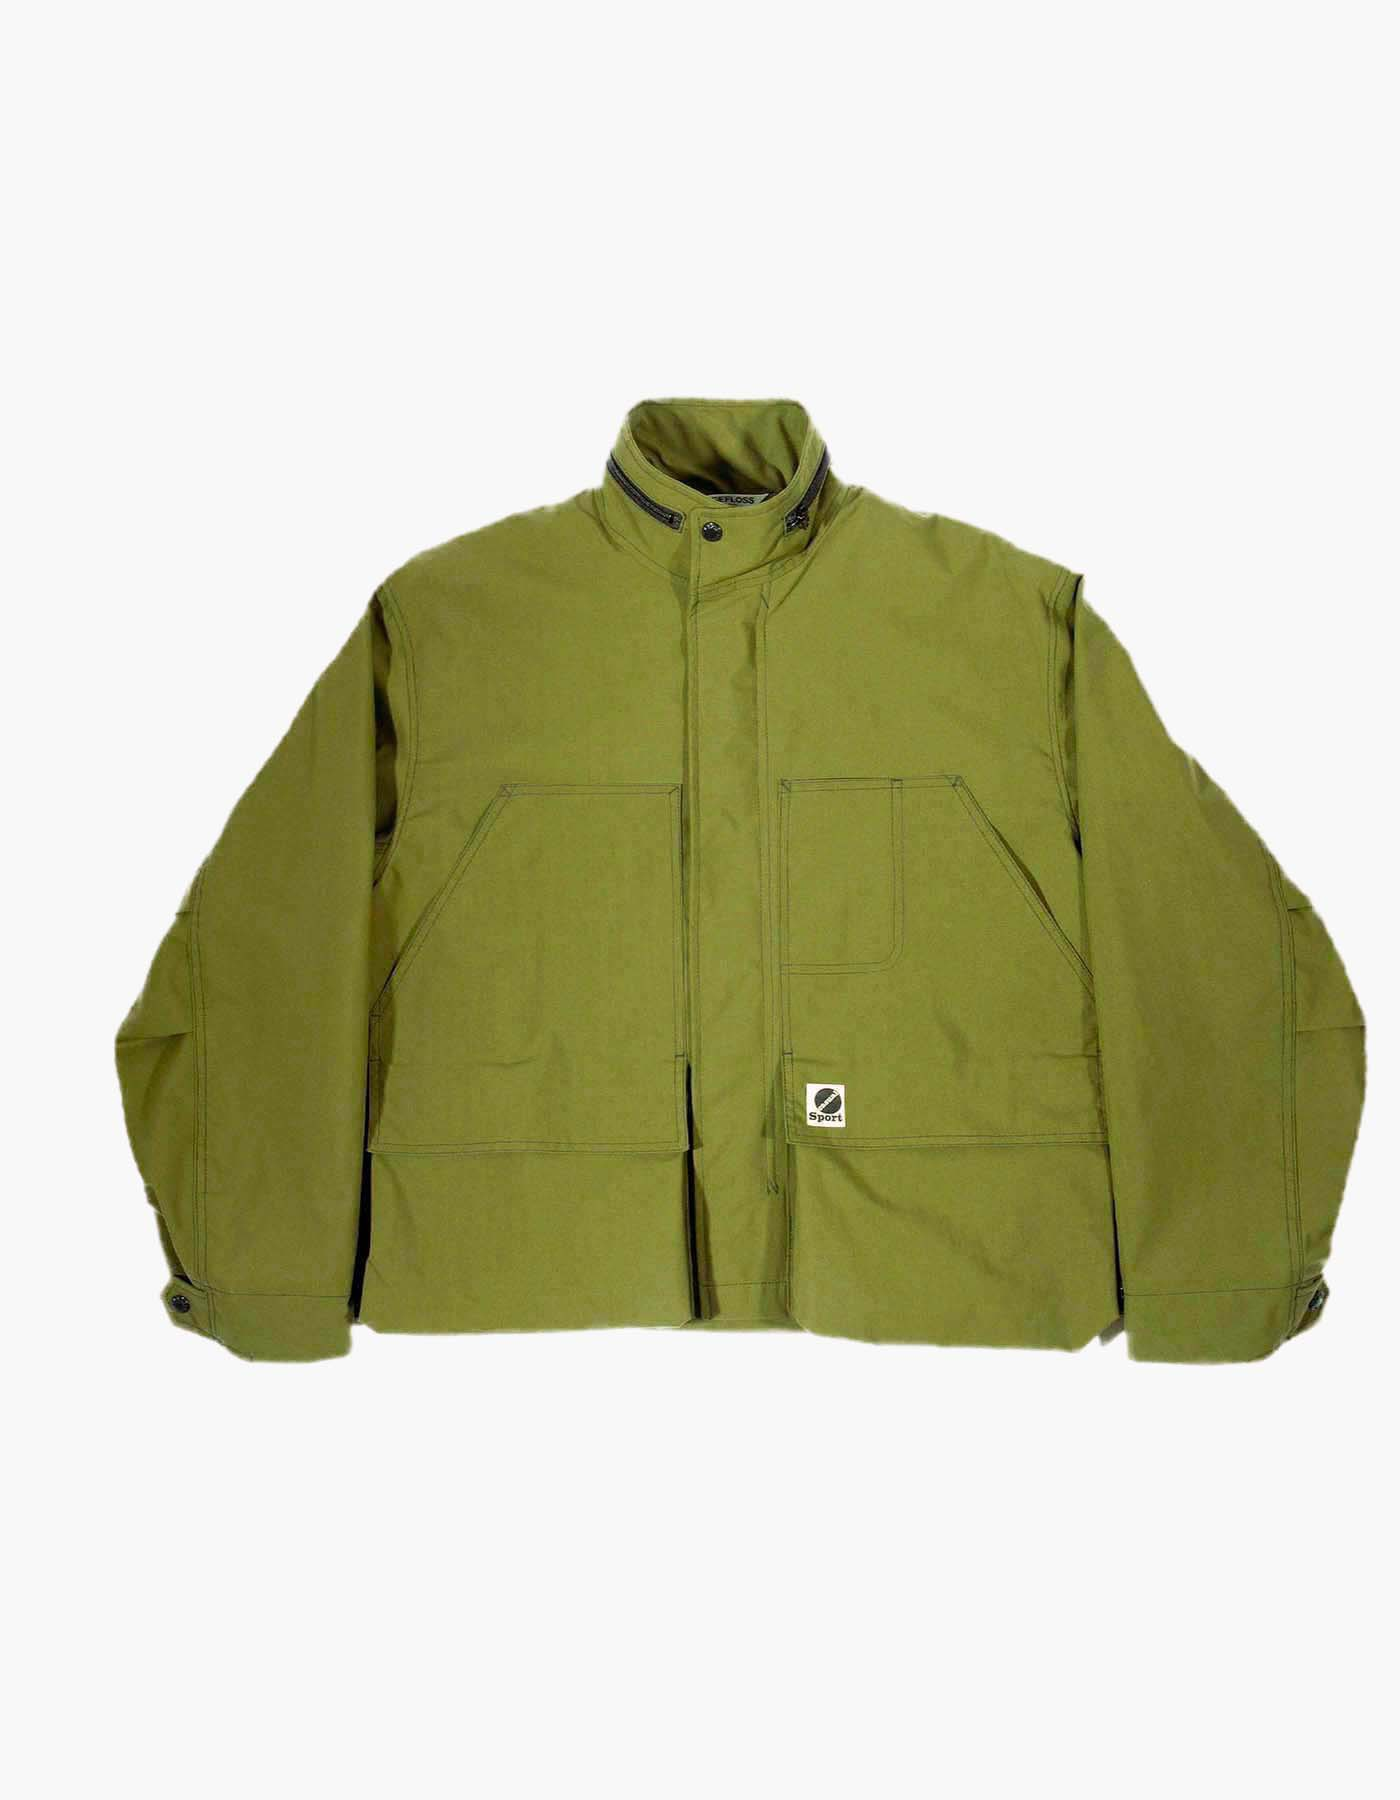 NYLON M-65 HUNTING JACKET / KHAKI